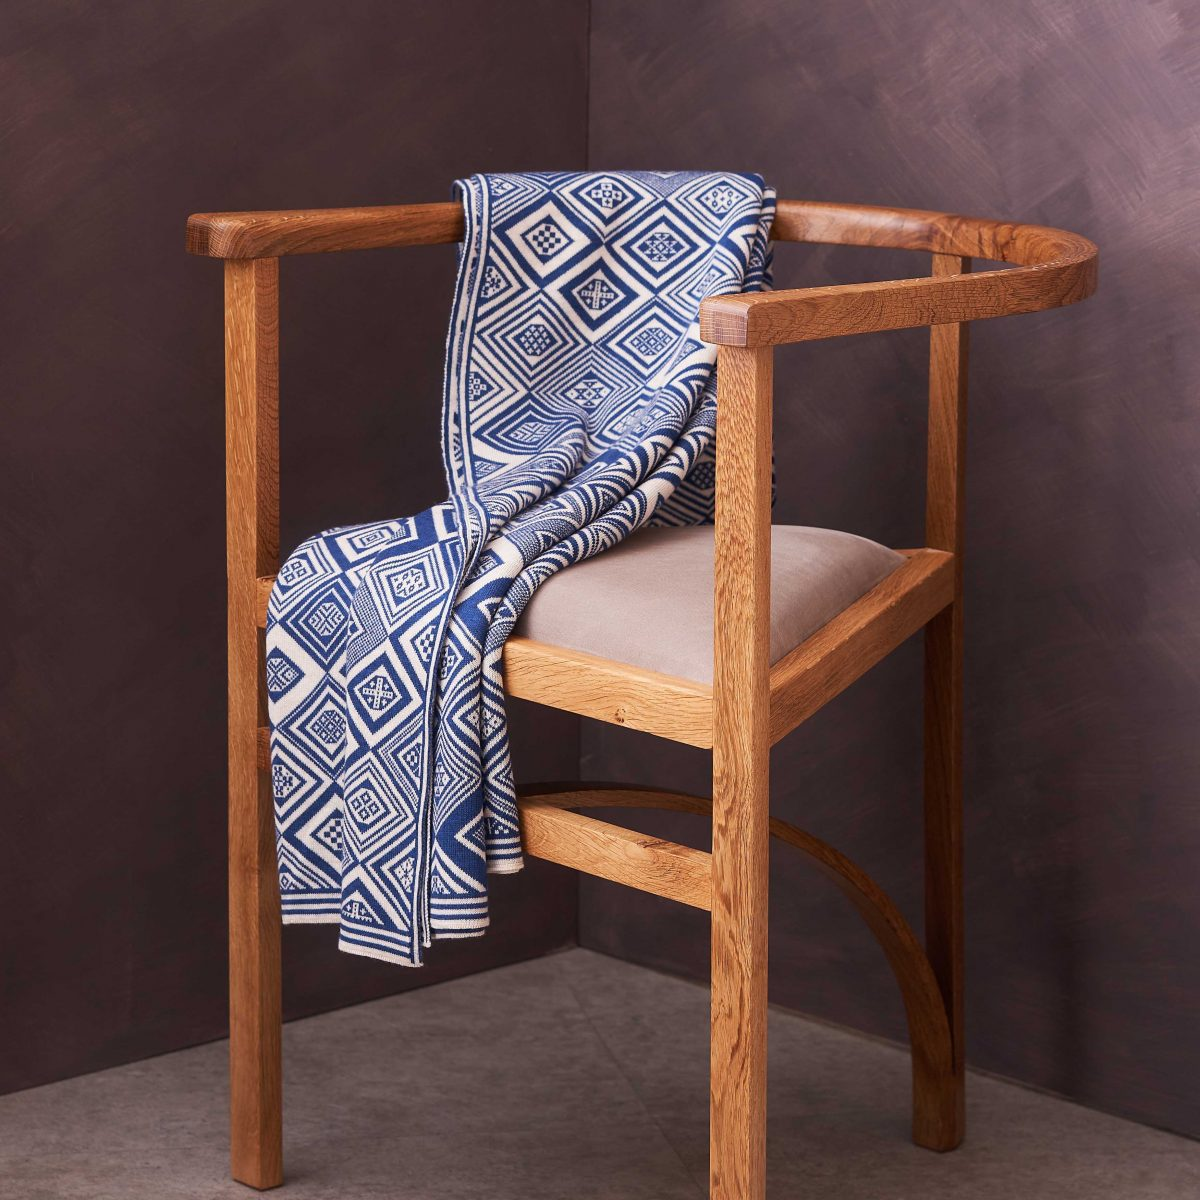 Blue and White throw by BAKKA drapped over prism chair by Angus Ross.